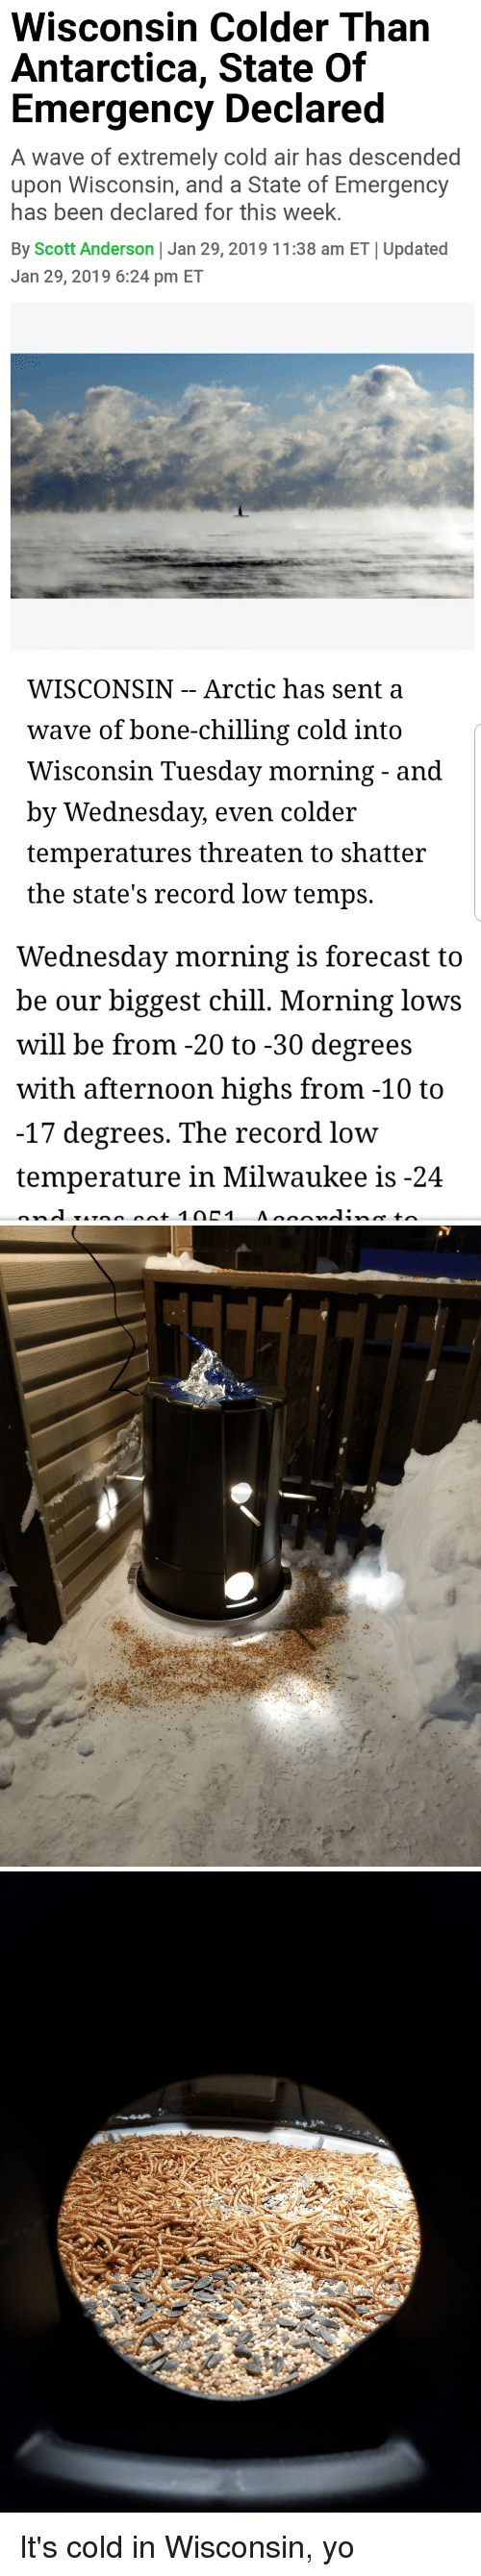 Forecast: Wisconsin Colder Than  Antarctica, State Of  Emergency Declared  A wave of extremely cold air has descended  upon Wisconsin, and a State of Emergency  has been declared for this week.  By Scott Anderson Jan 29, 2019 11:38 am ET Updated  Jan 29, 2019 6:24 pm ET   WISCONSIN - - Arctic has sent a  wave of bone-chilling cold intO  Wisconsin Tuesday morning - and  by Wednesday, even col  temperatures threaten to shatter  the state's record low temps.  der   Wednesday morning is forecast to  be our biggest chill. Morning lows  will be from -20 to -30 degrees  with afternoon highs from -10 to  -17 degrees. The record low  temperature in Milwaukee is-24 It's cold in Wisconsin, yo